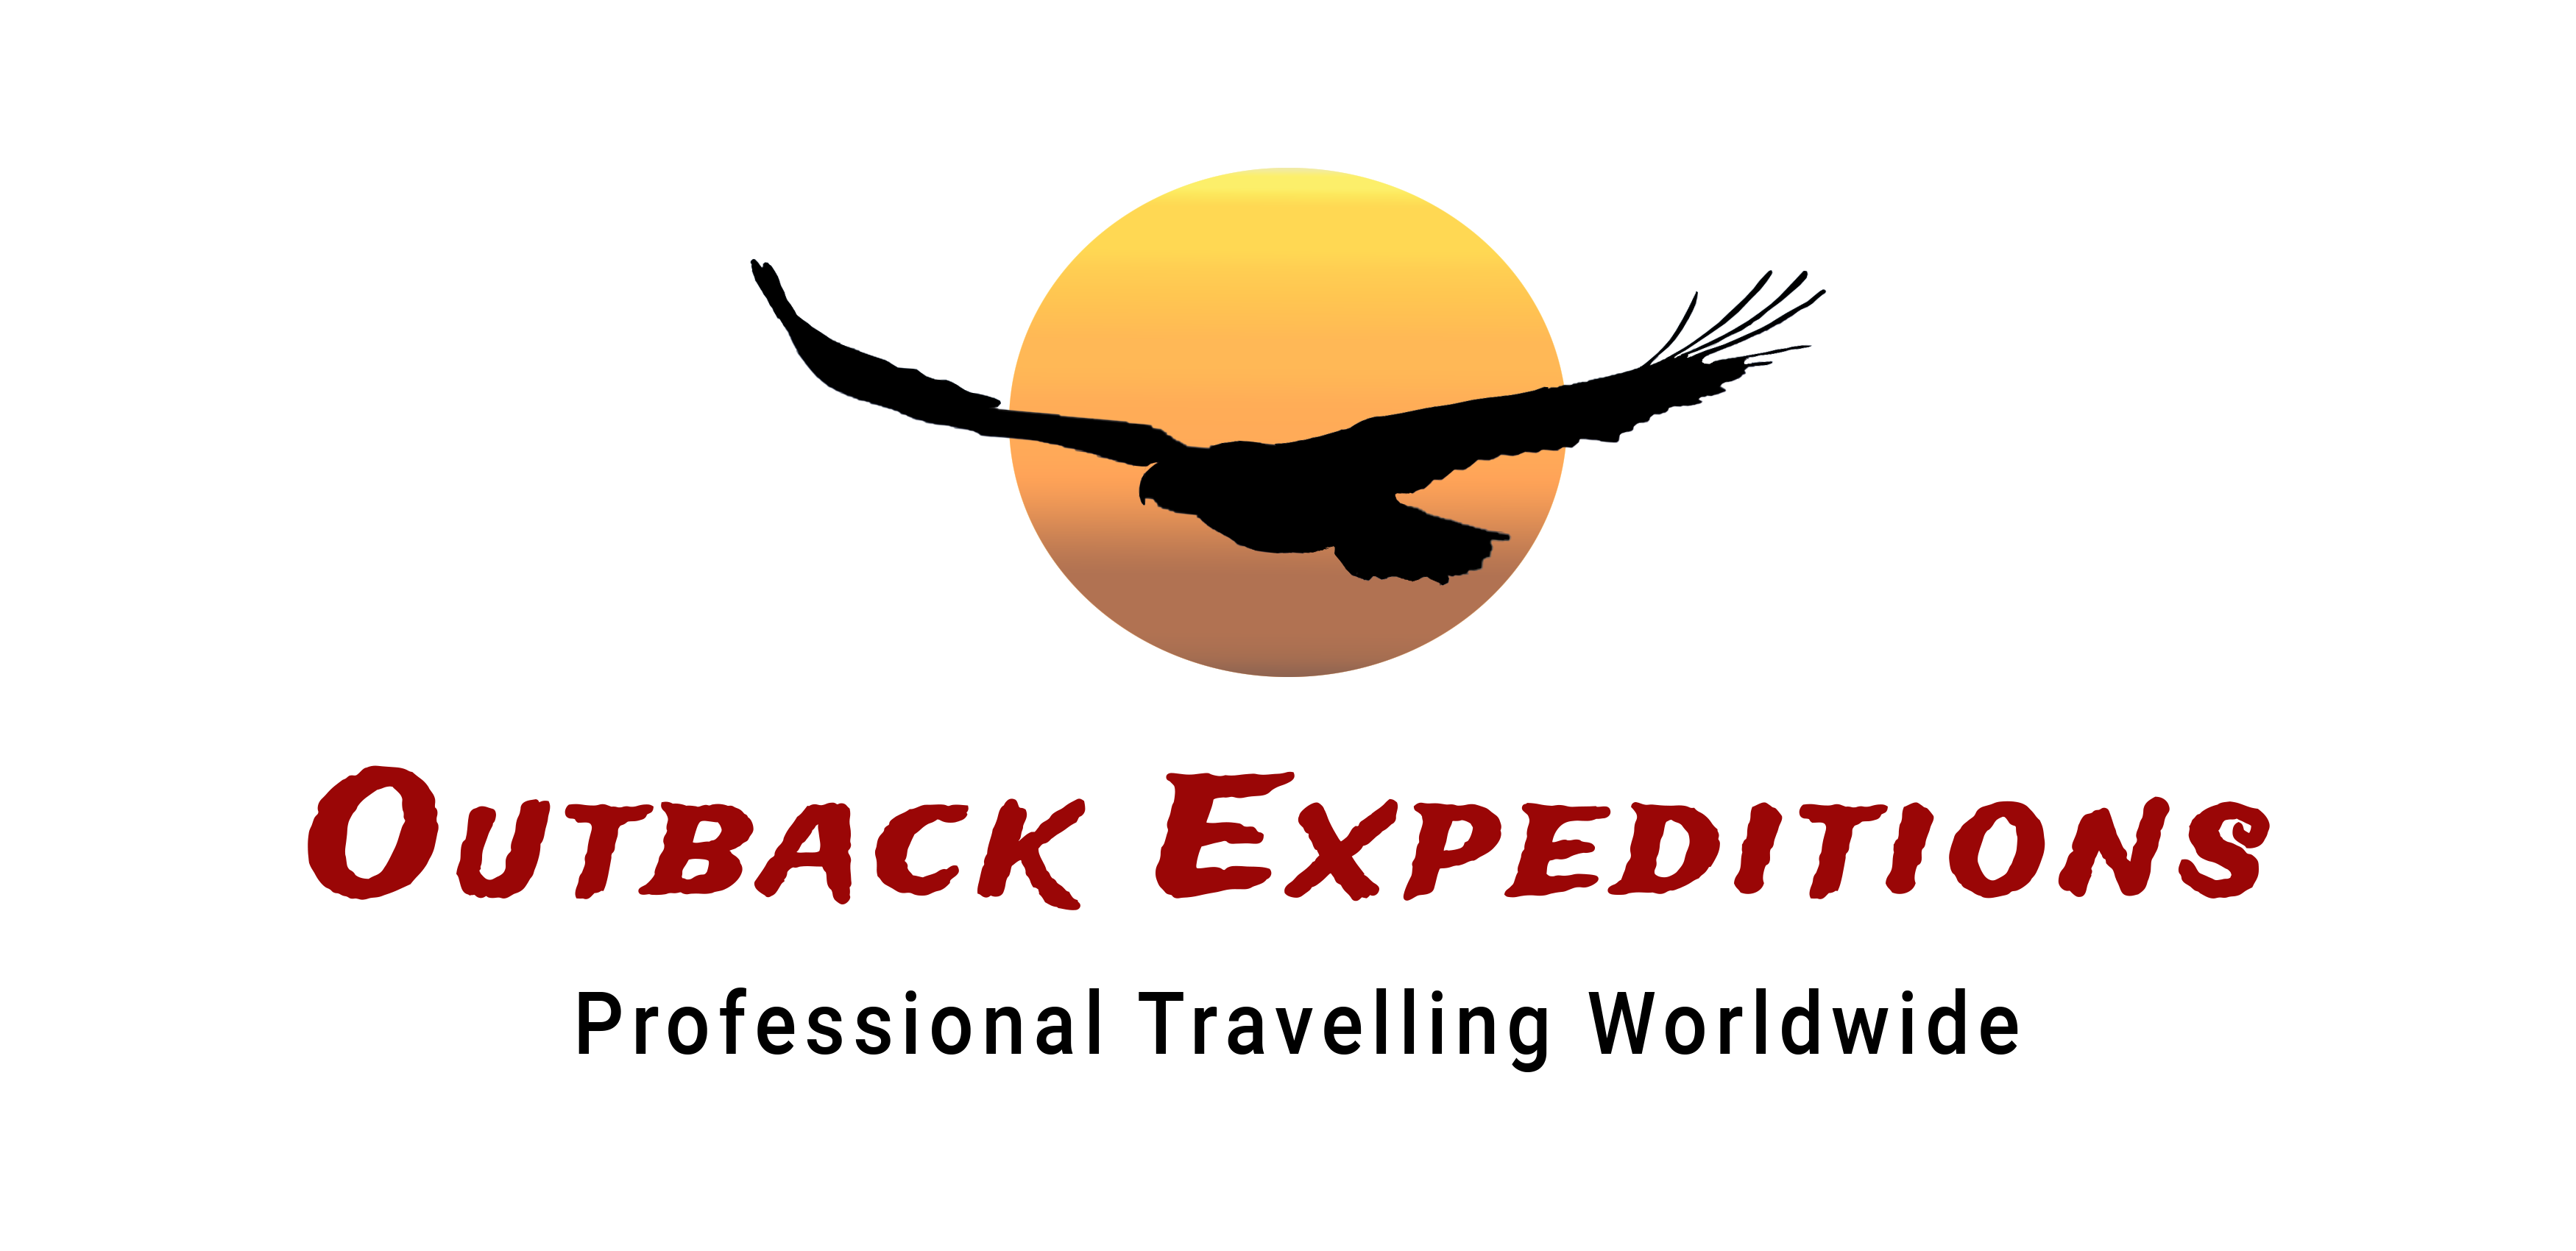 Outback Expeditions